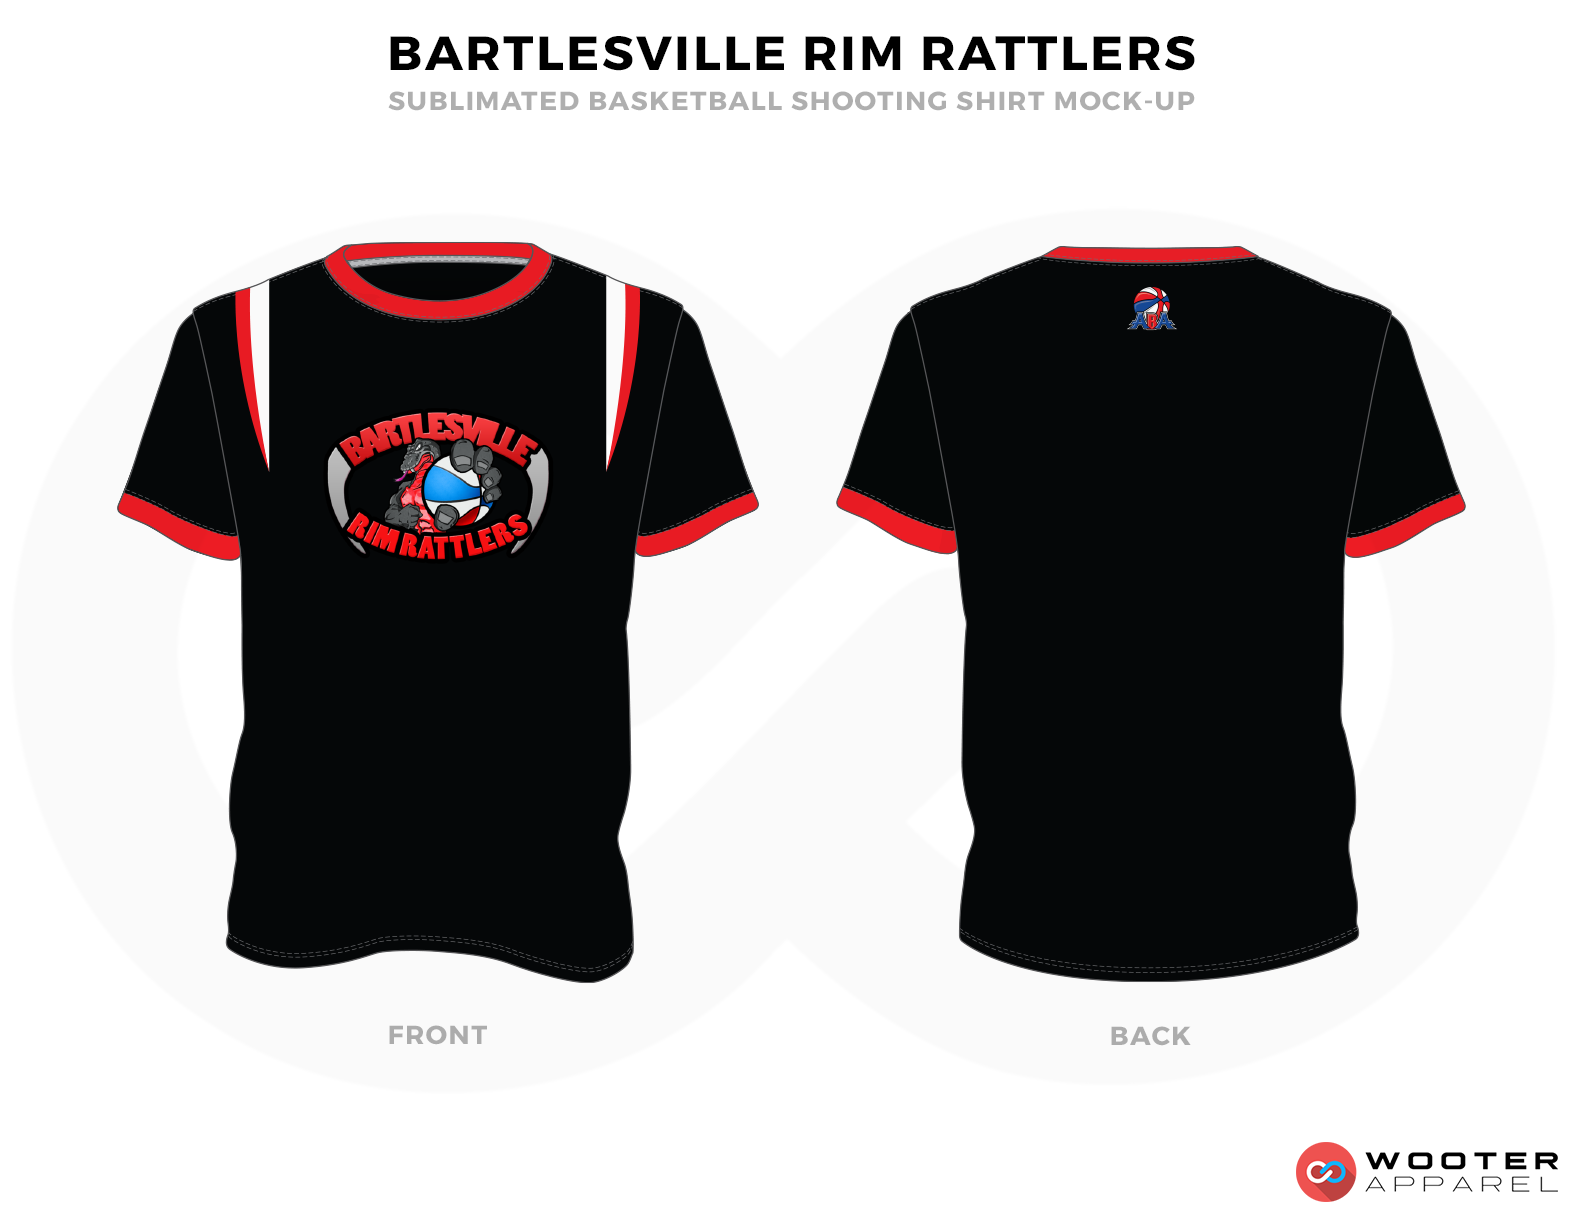 BARTLESVILLE RIM RATTLERS Black Red and White Basketball Uniforms, Jersey